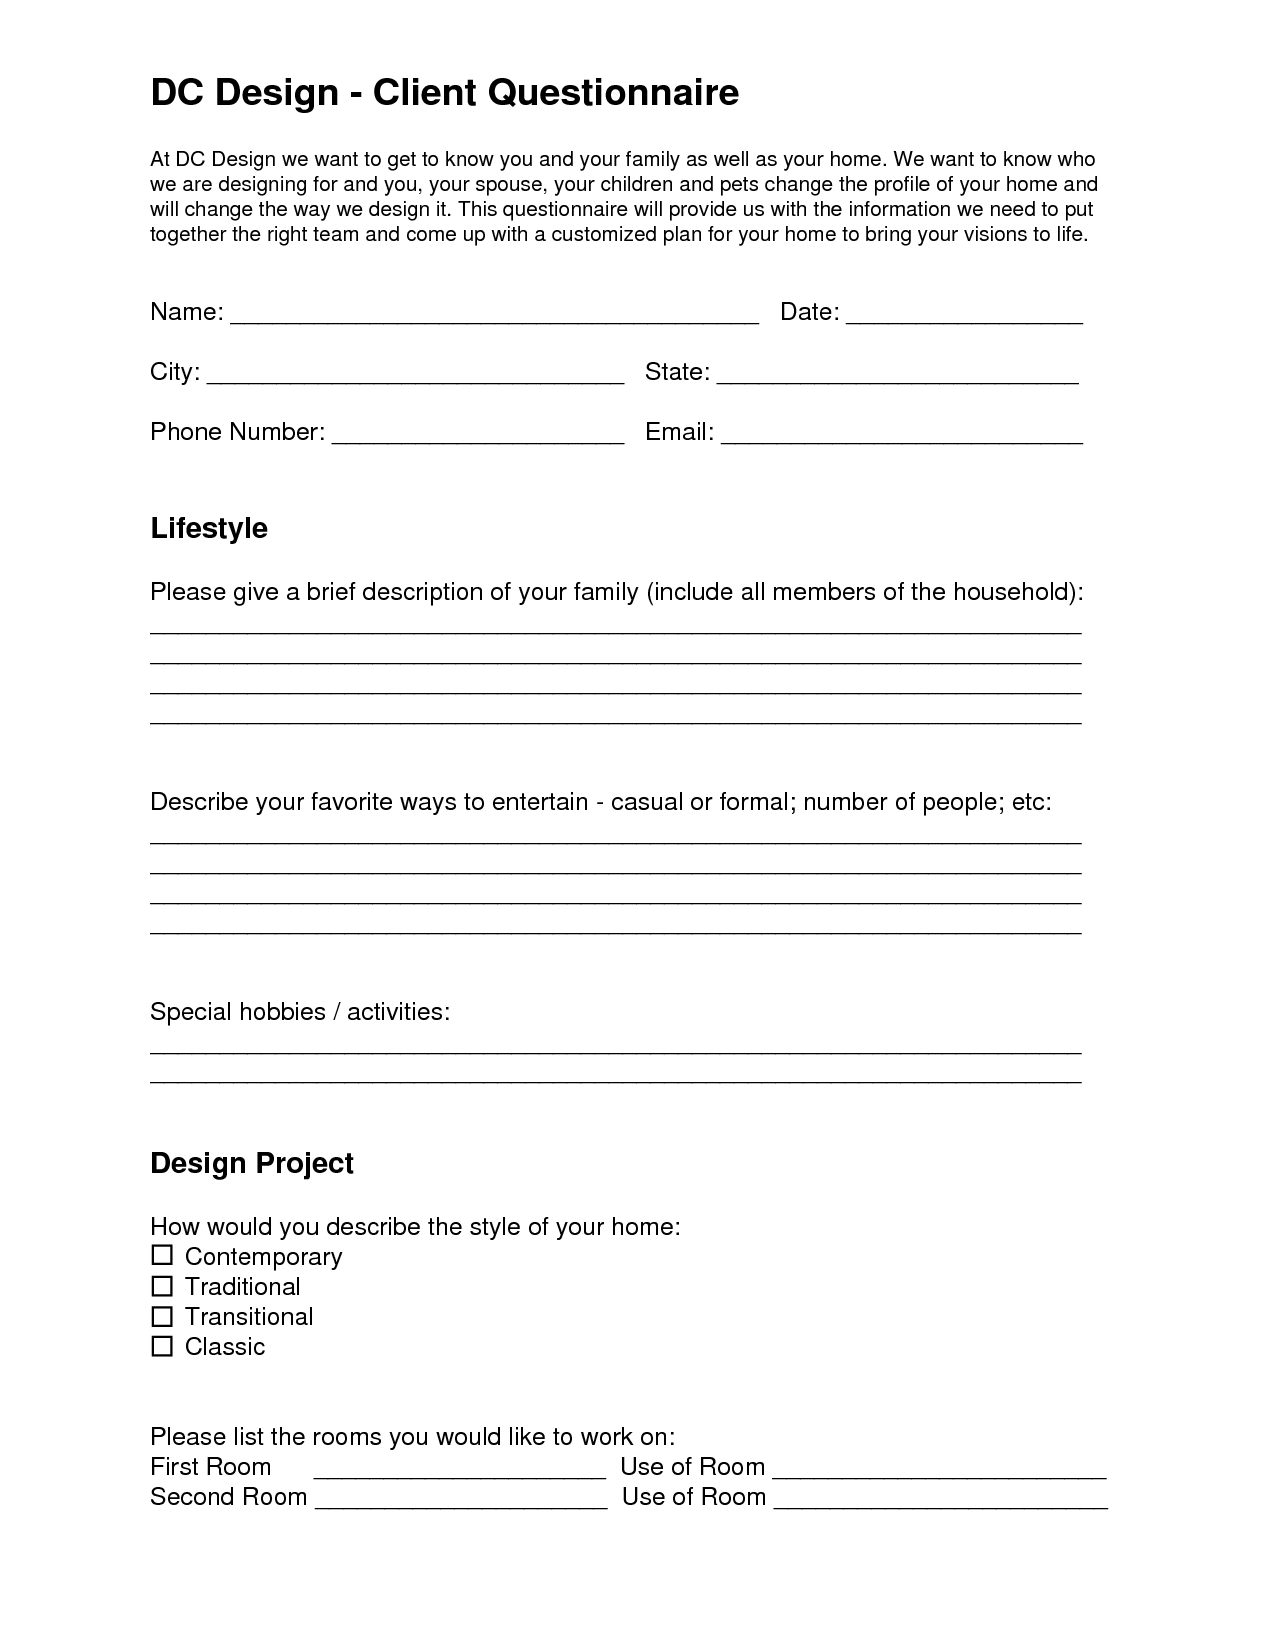 Interior design questionnaire for clients pdf for Office design questionnaire